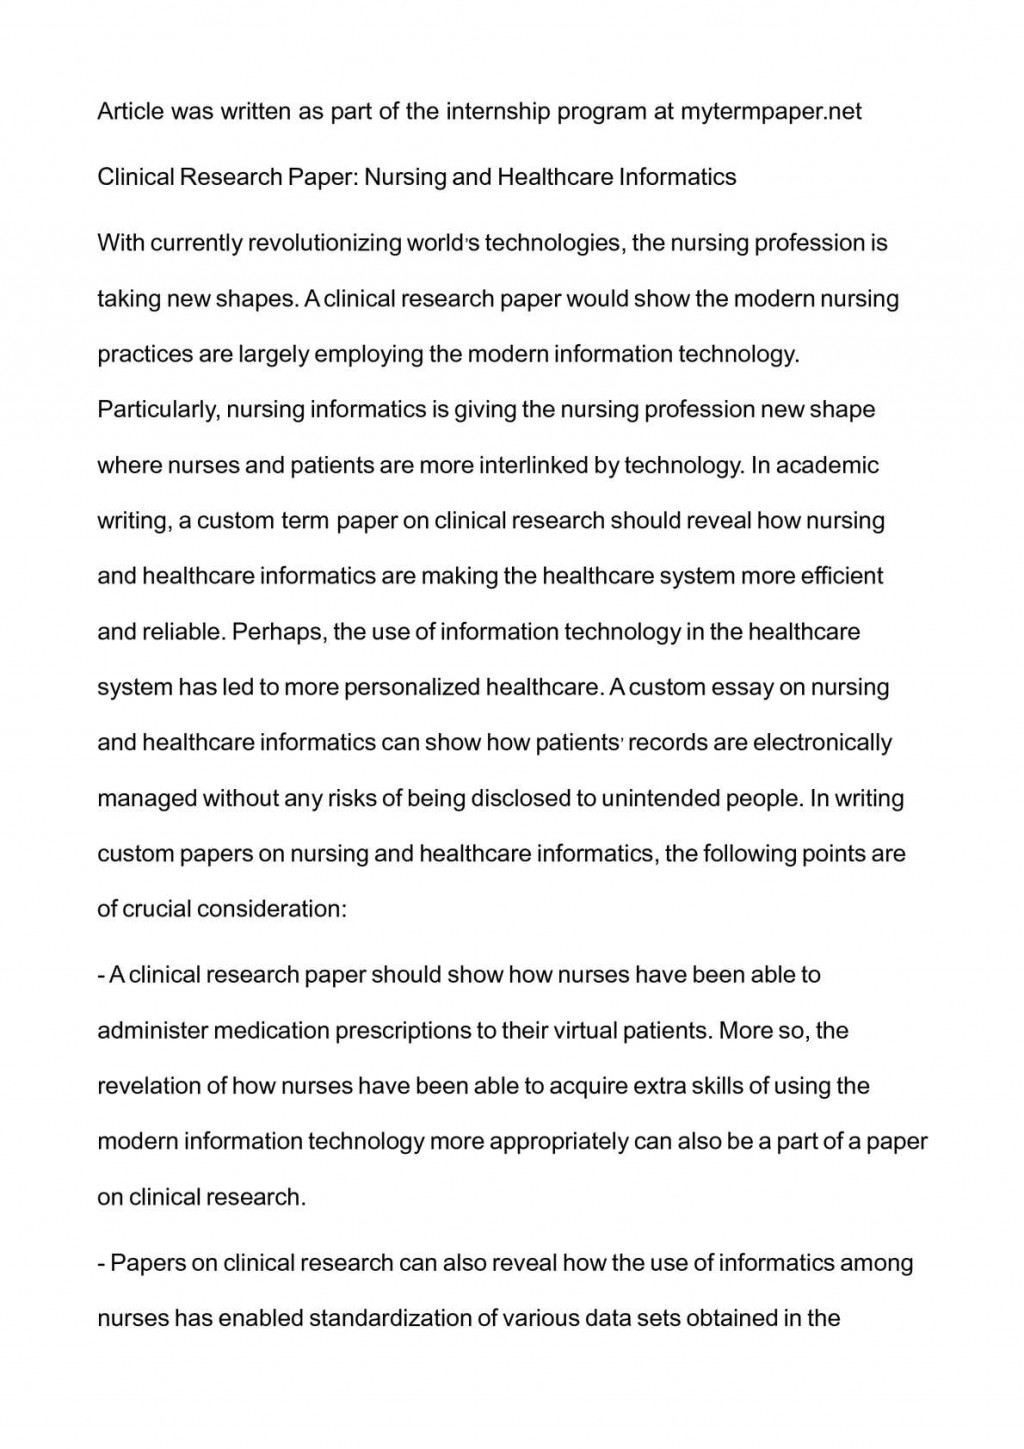 010 Research Paper Nursing Sensational Career Outline On Burnout Home Abuse And Neglect Large